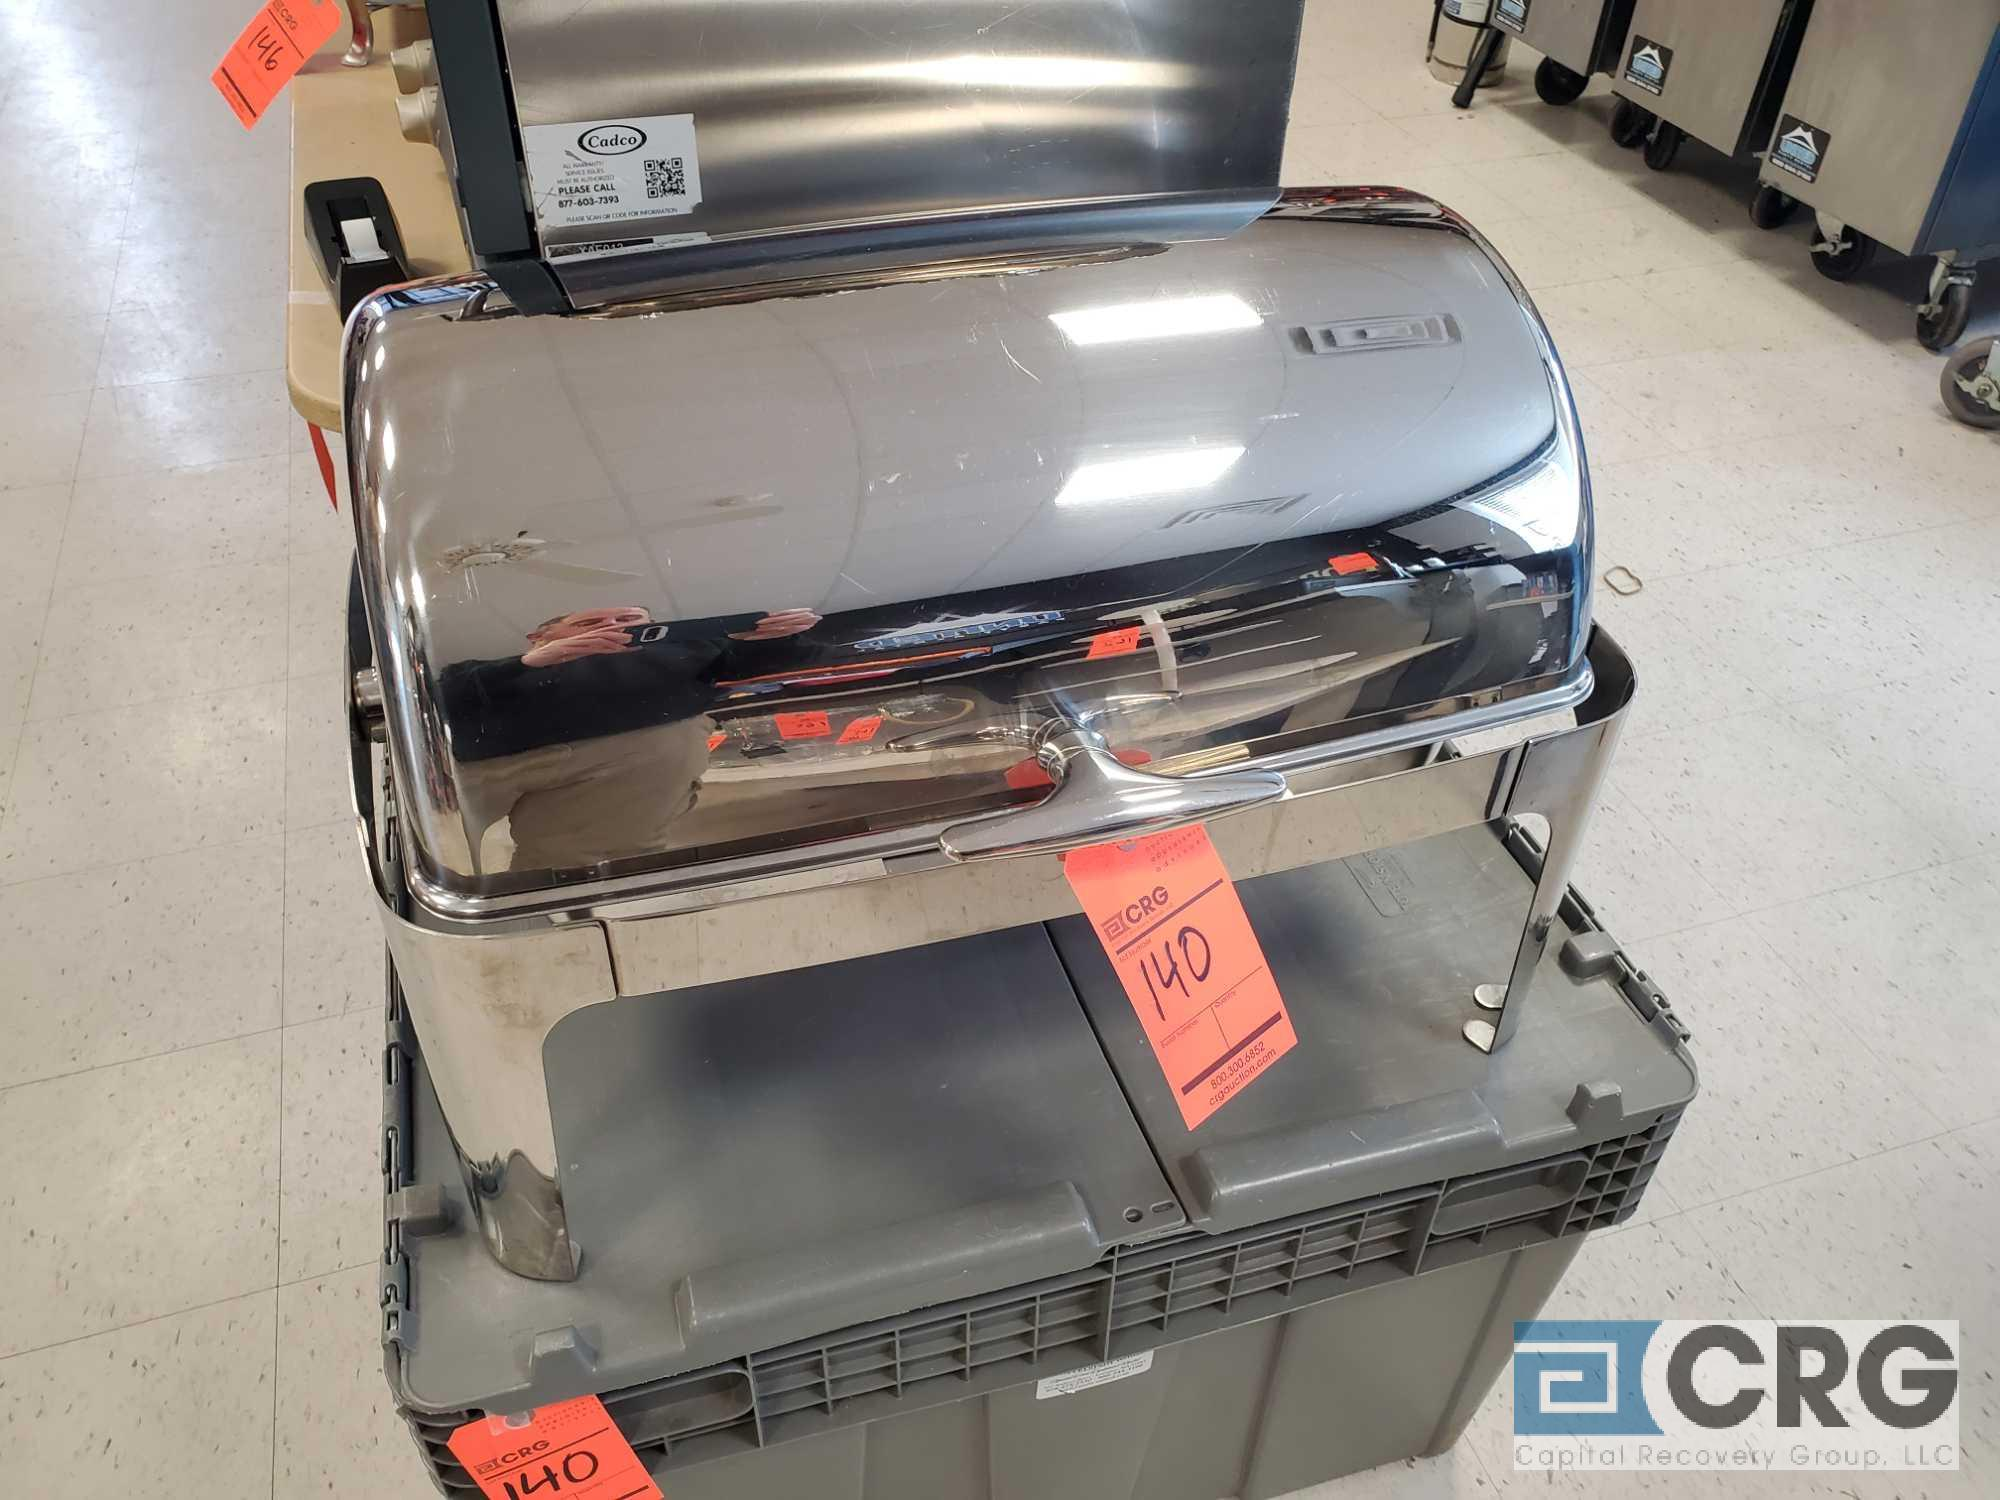 Stainless steel roll top chafing dish, with plastic storage tub